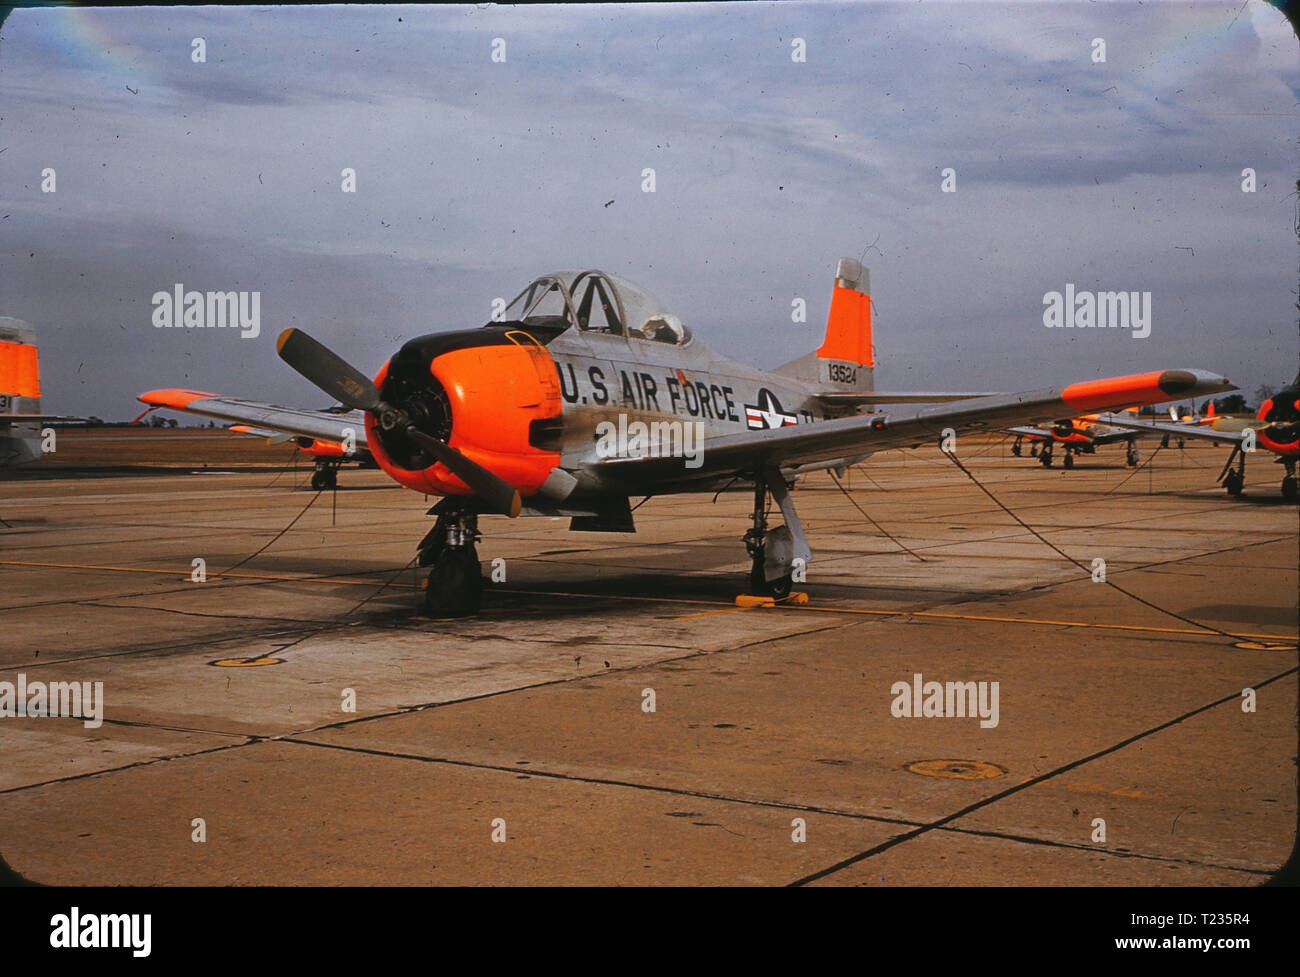 A North American T-28 Trojan parked at Spence Air Base in February 1959. Spence Air Base in Moultrie, GA was used as a US Air Force private contractor operated fight training school from 1951 to 1961, when the field was returned to civilian control. - Stock Image